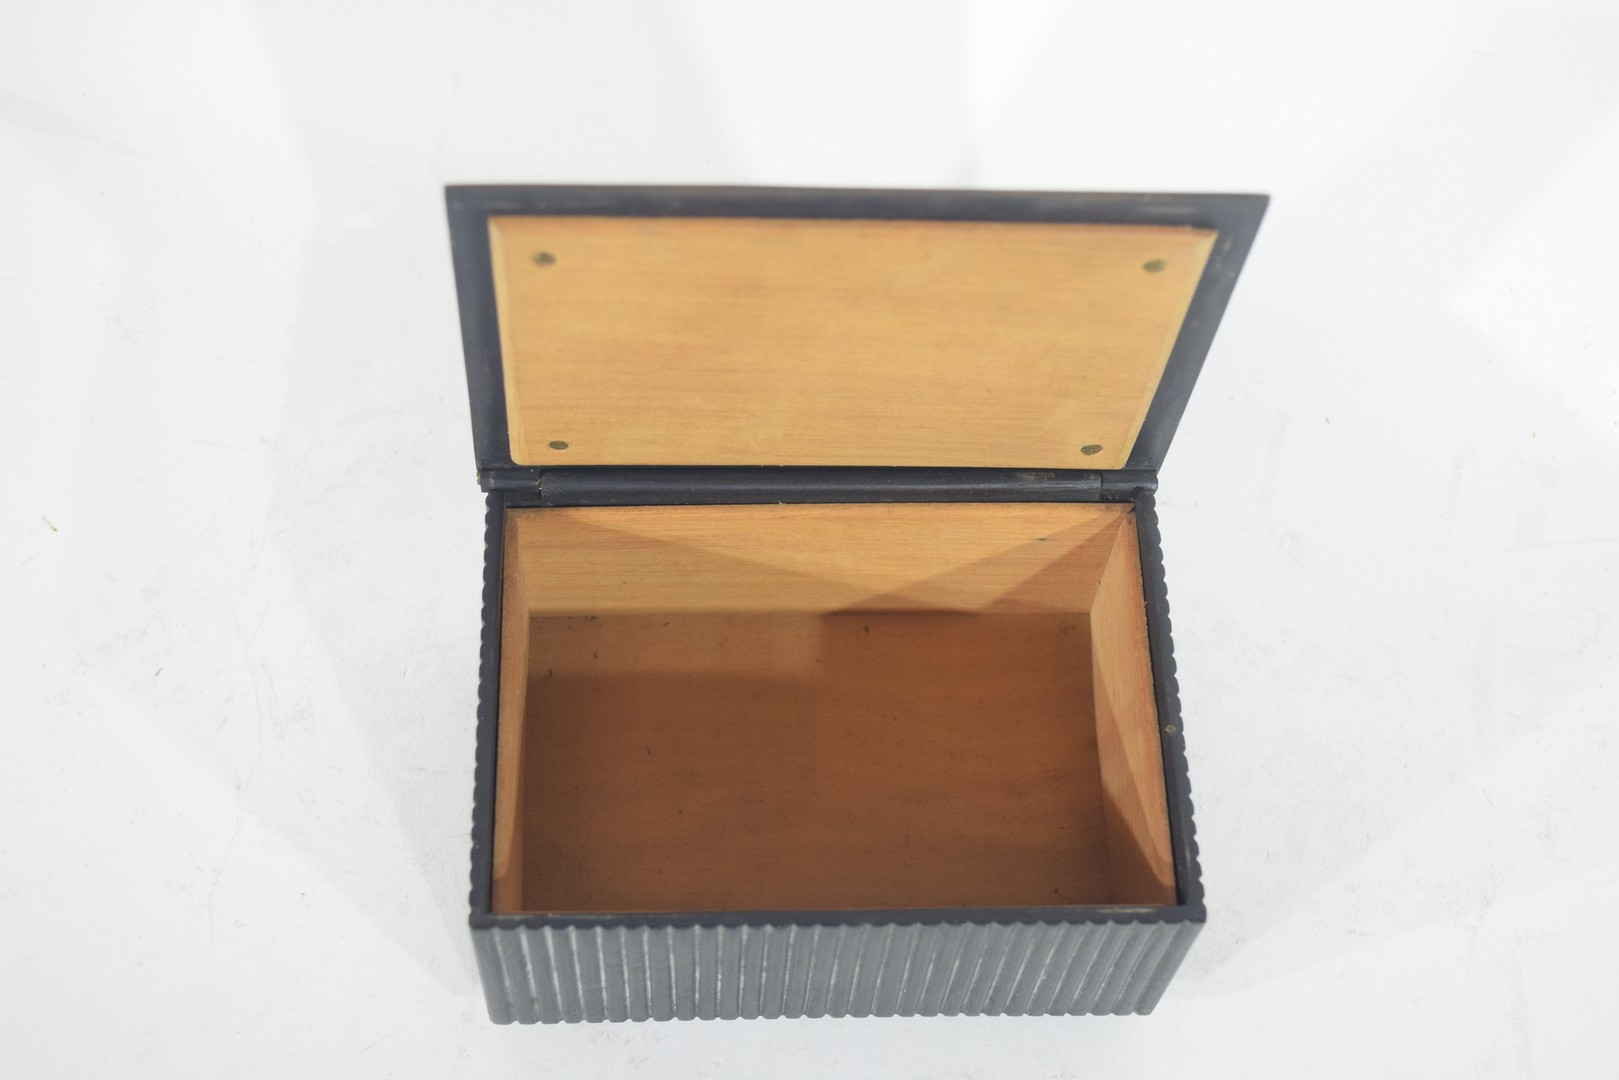 Box, the top modelled with two Corgi style dogs - Image 6 of 6